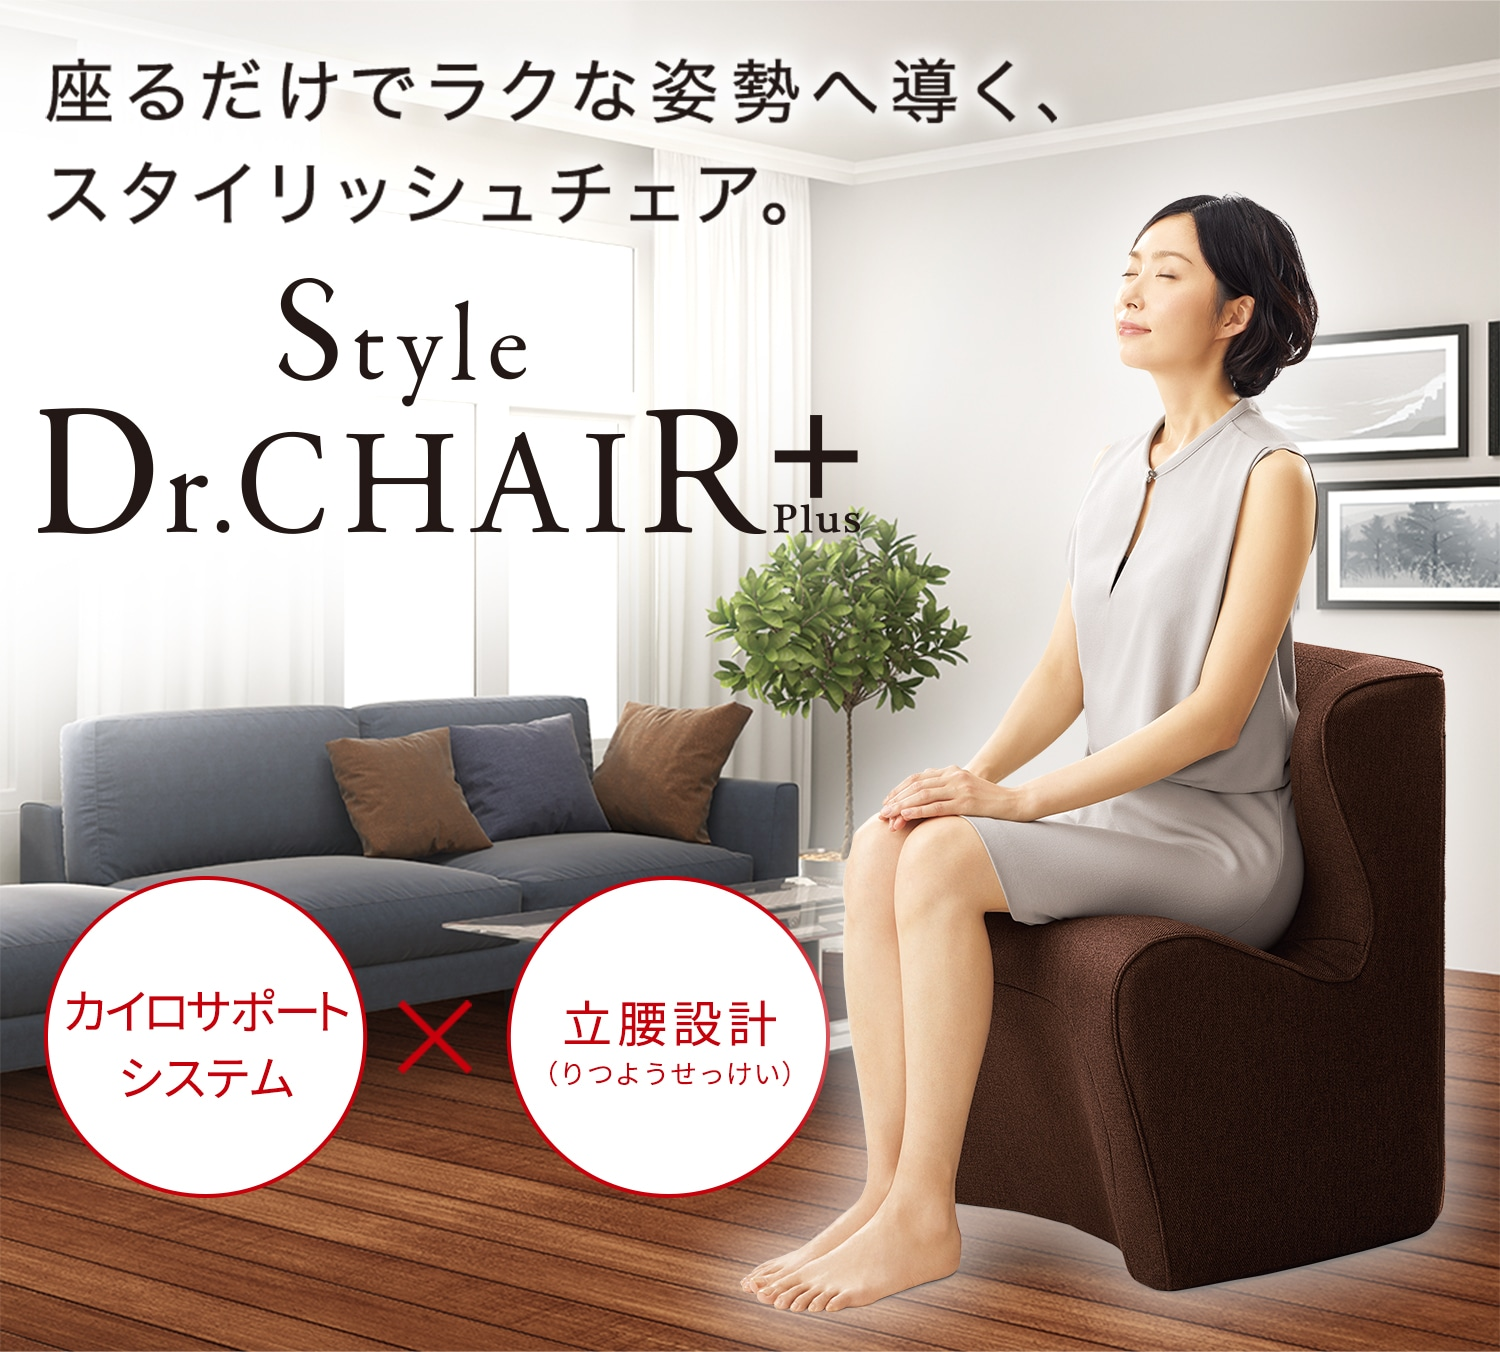 Style Dr.CHAIR Plus,スタイル ドクターチェアプラス